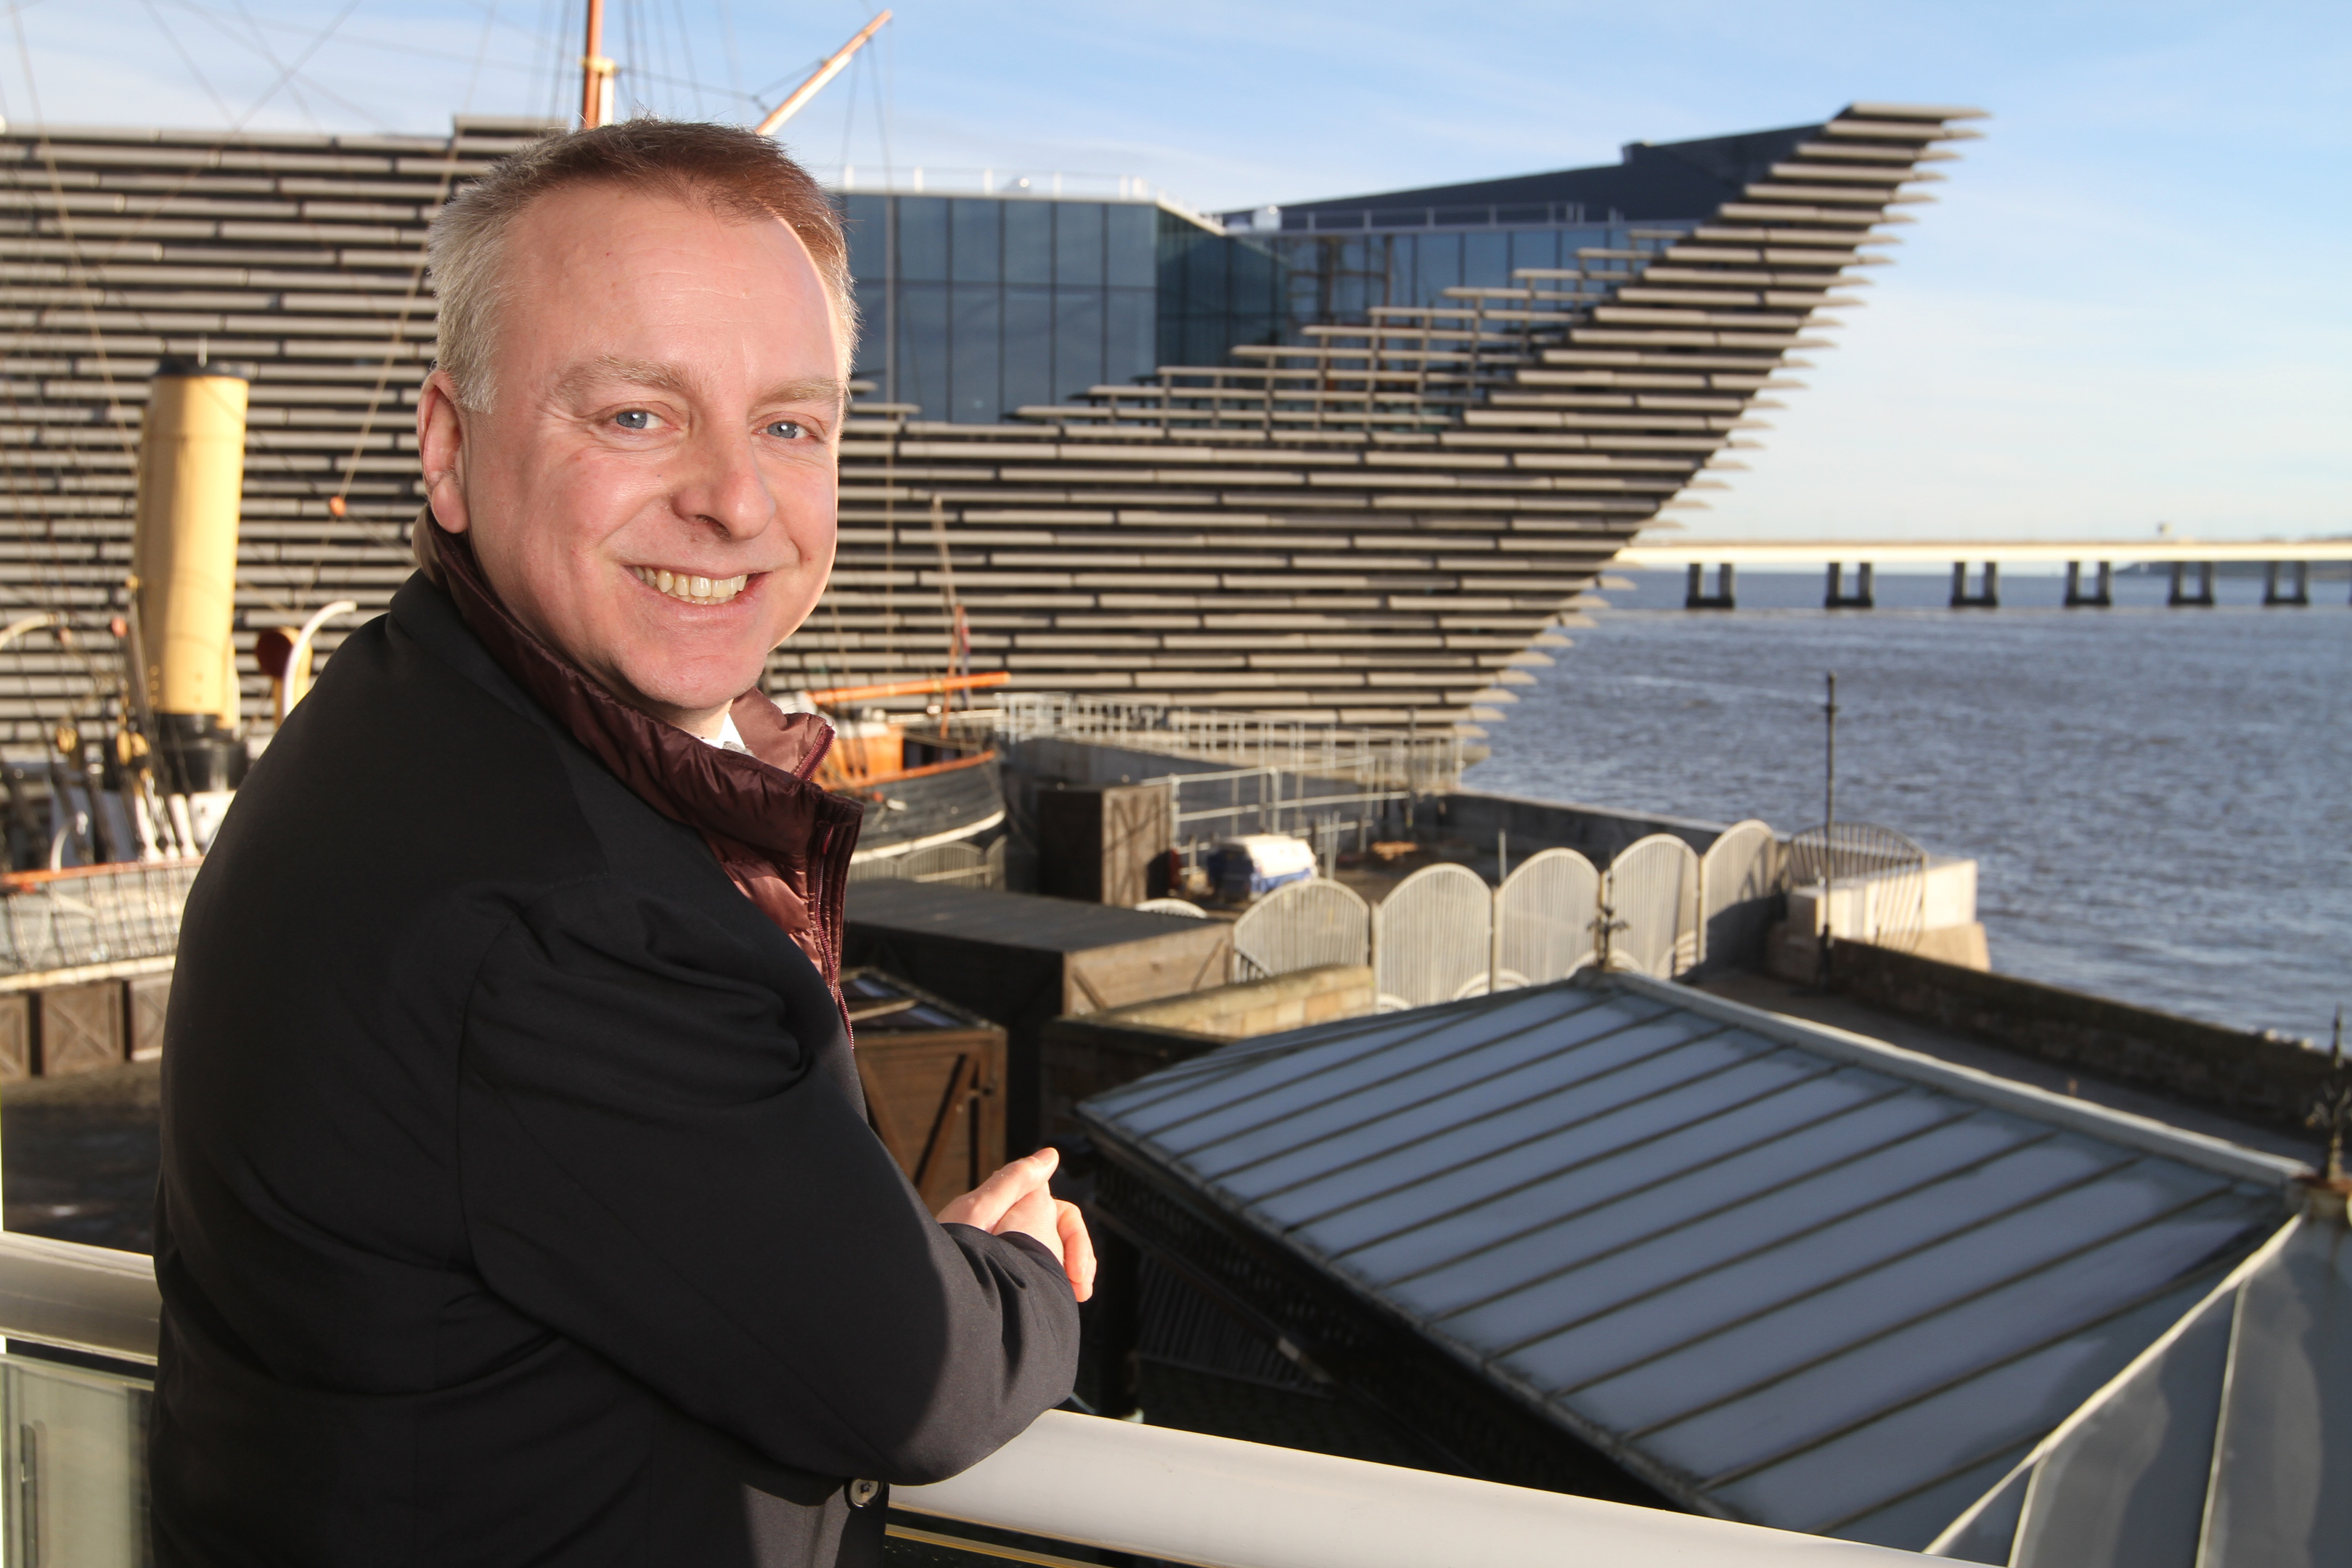 Philip Long outside the V&;A museum in Dundee.